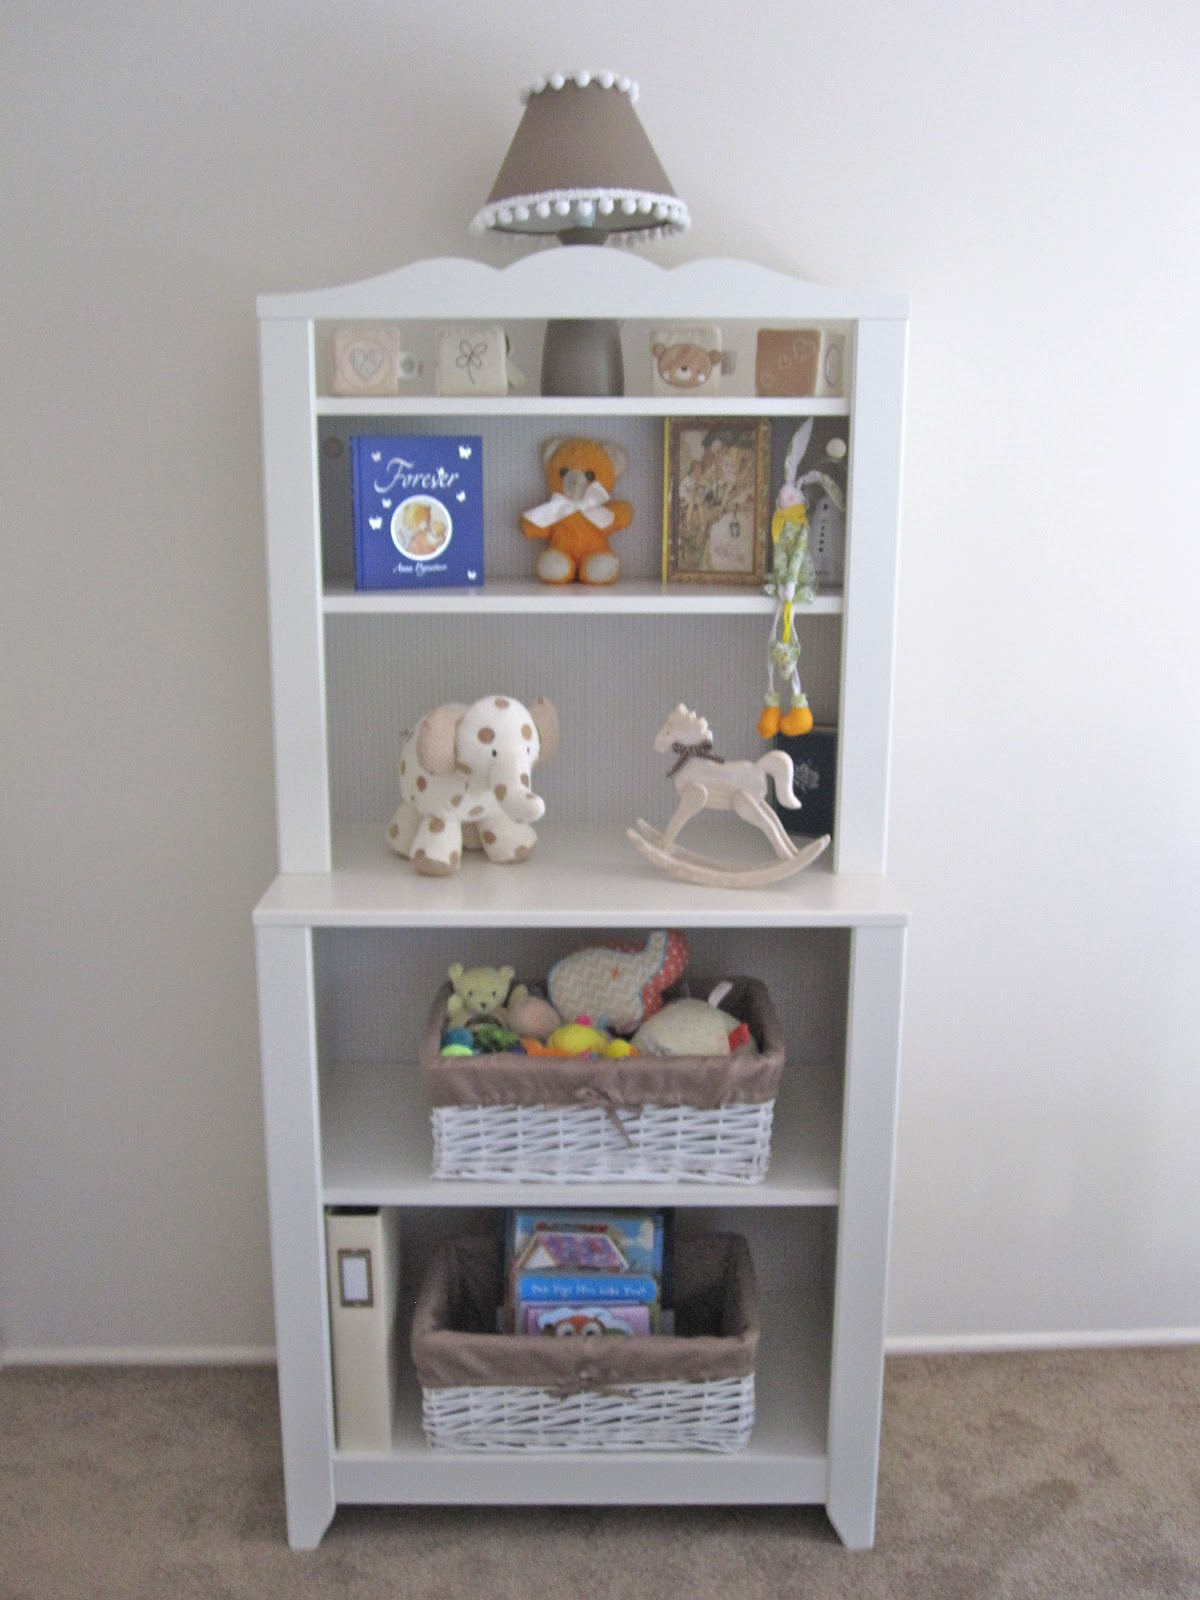 Along The Same Wall As The Doorway Is The Chest Of Drawers. I Decided To  Use A Double Chest Of Drawers, So That It Could Also Serve As A Changing  Table Too.